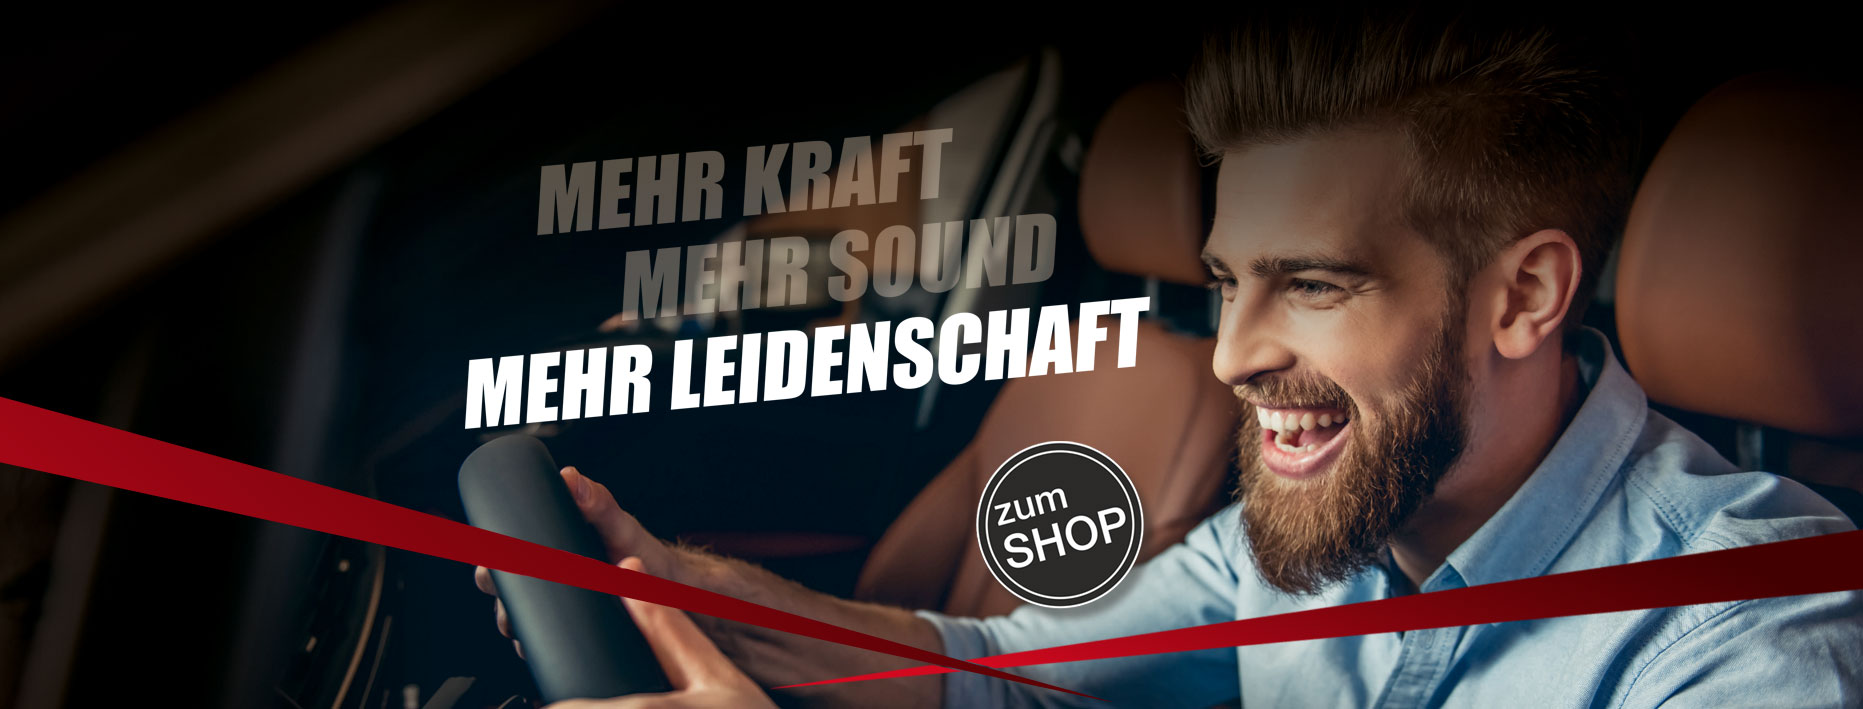 friedrich-motorsport-home-3